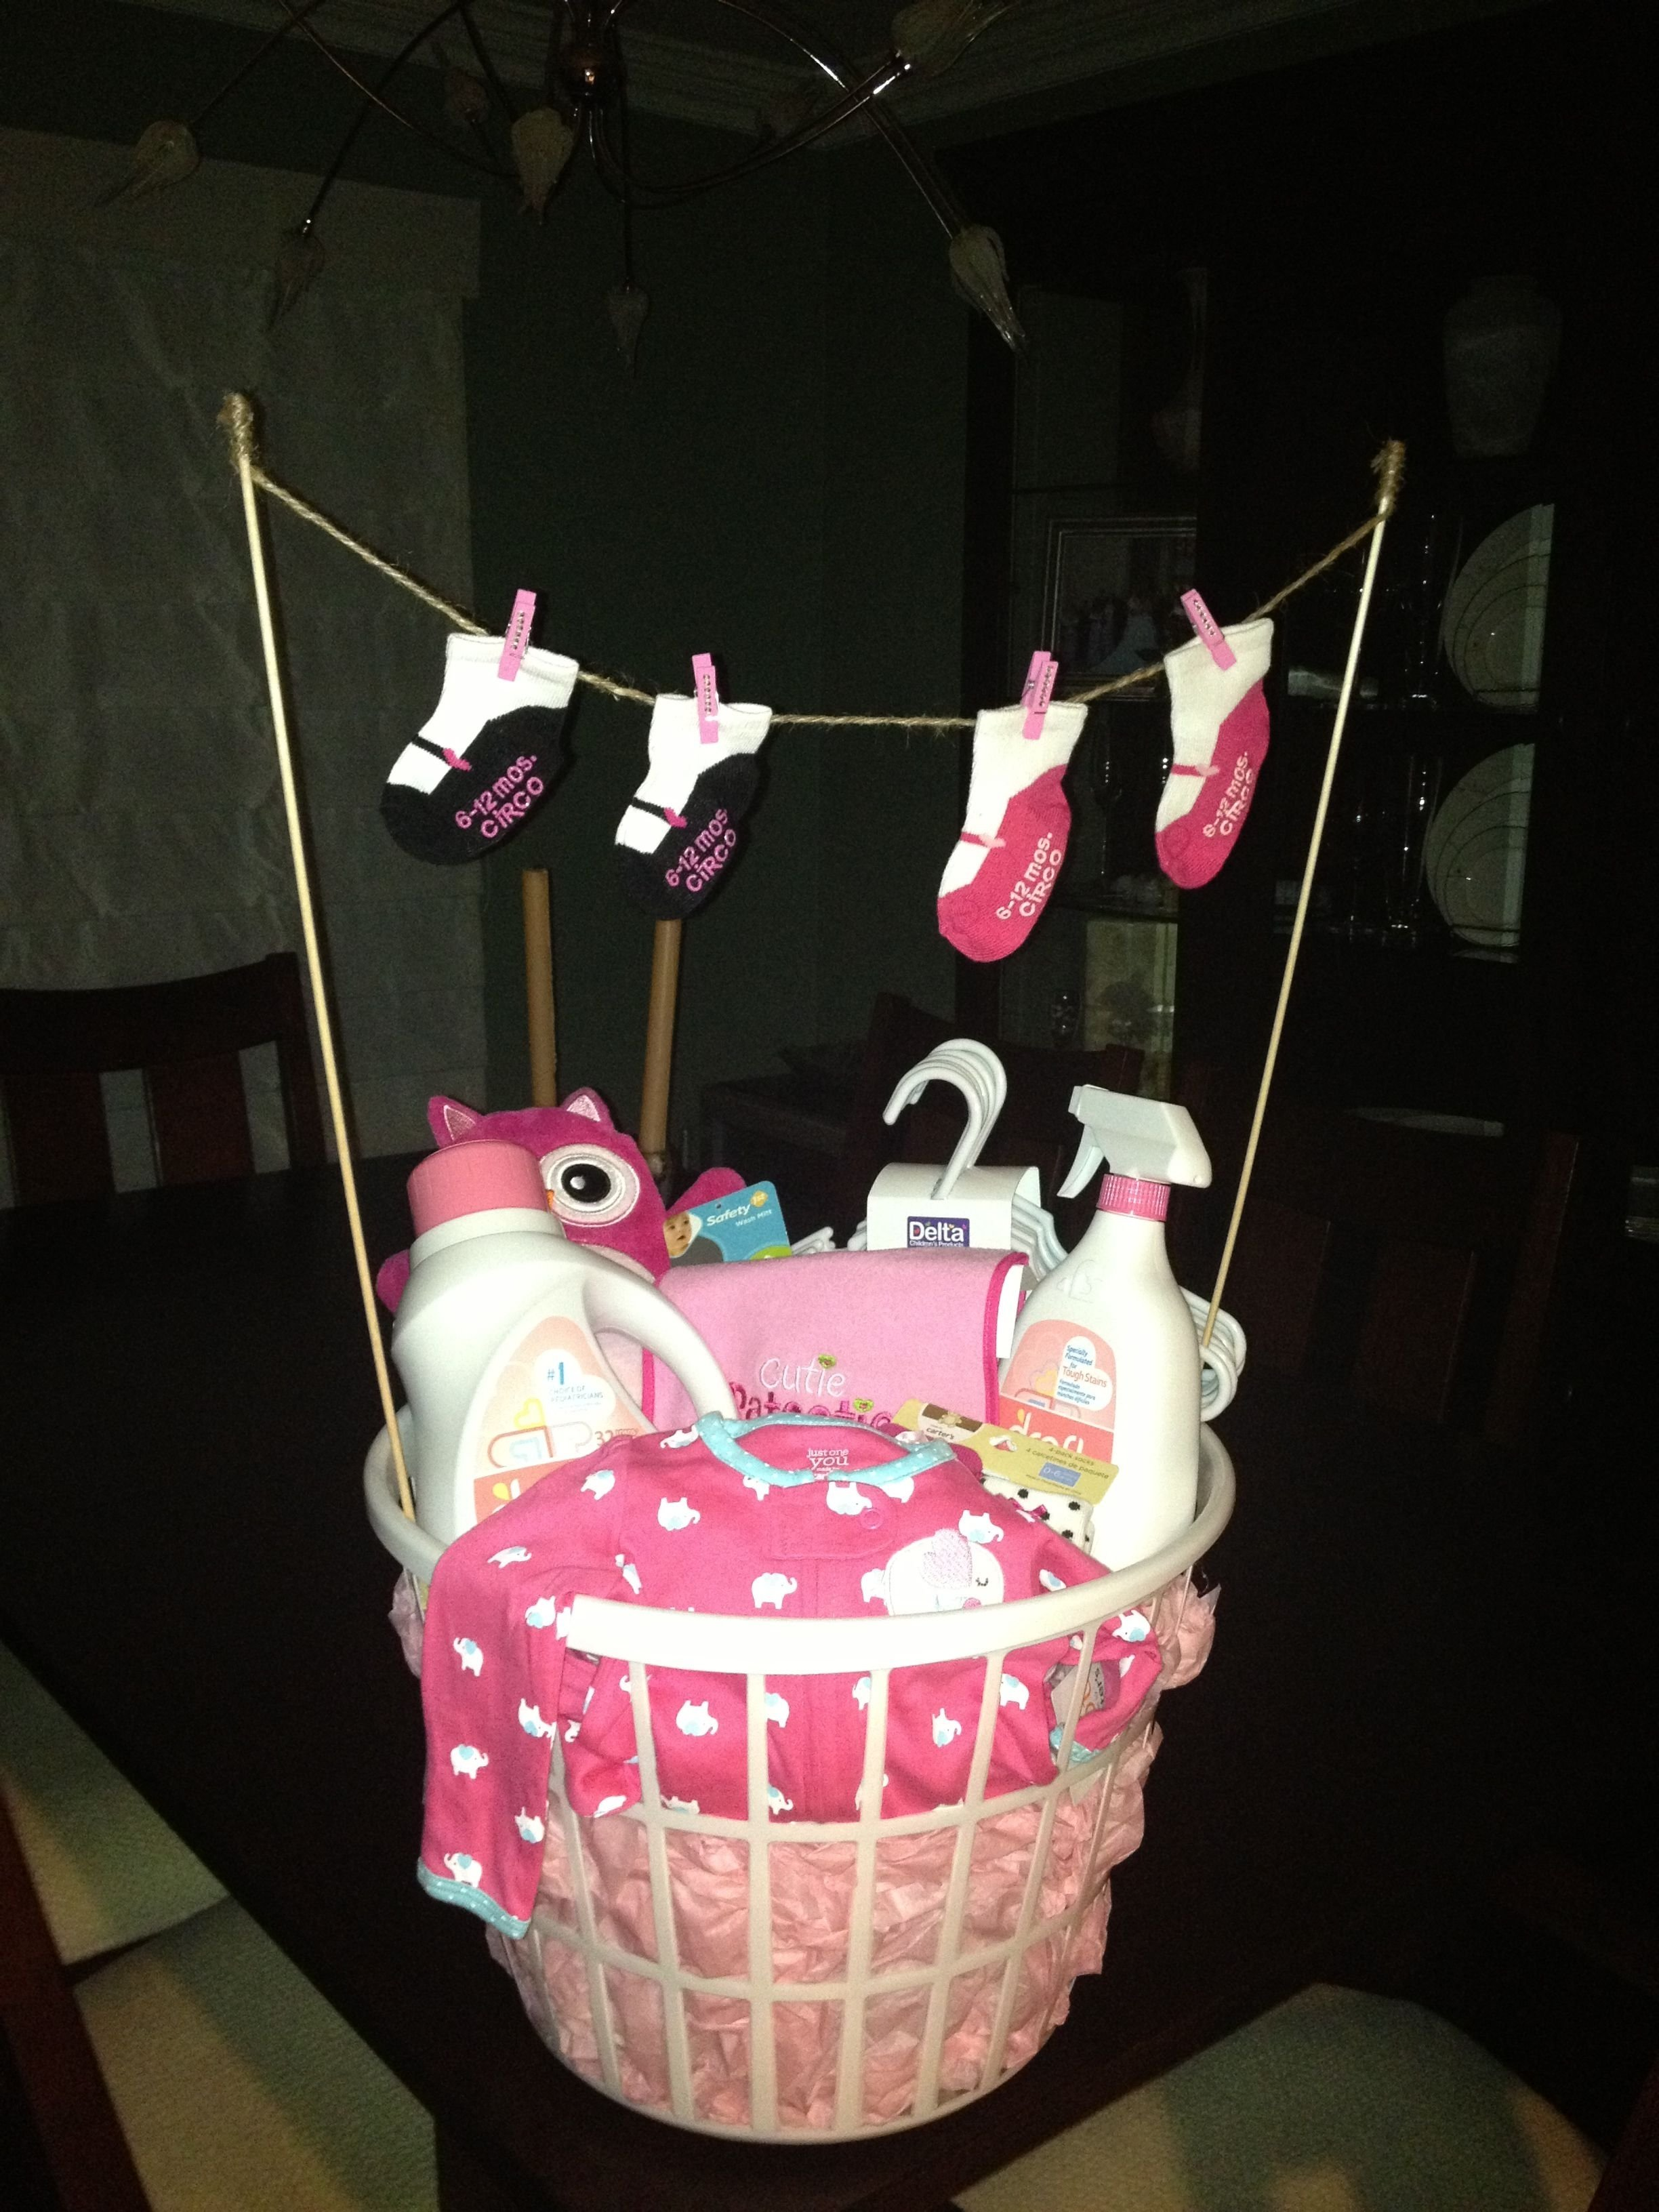 10 Pretty Ideas For A Baby Shower For A Girl laundry basket baby shower gift baby gifts pinterest laundry 2021